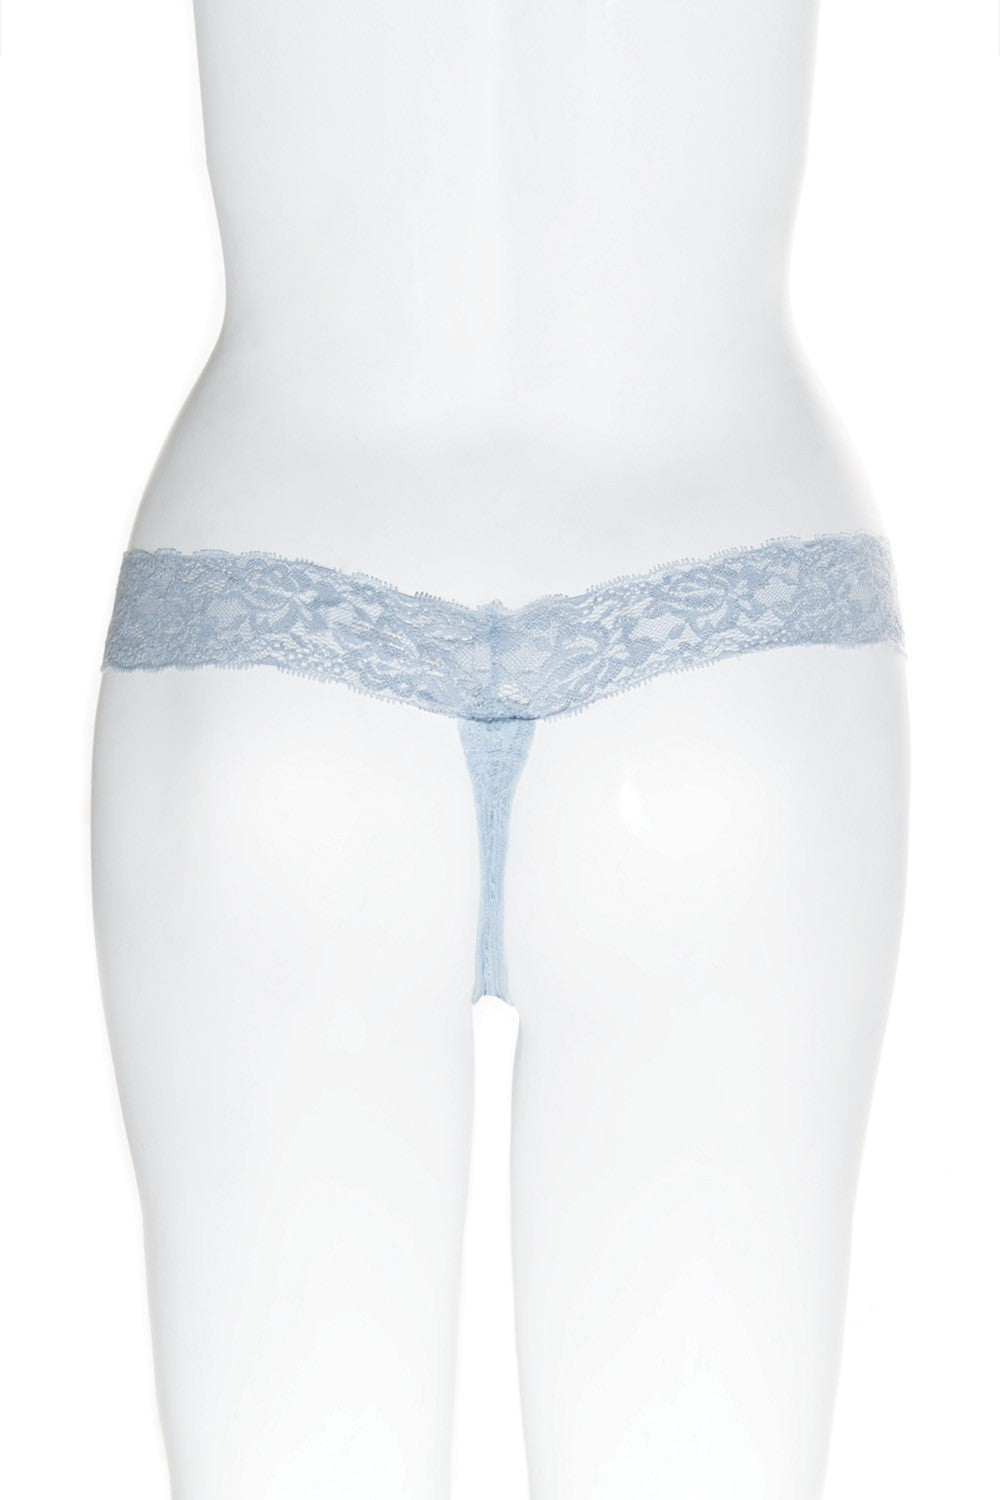 Powder Blue Lace Thong (4091)